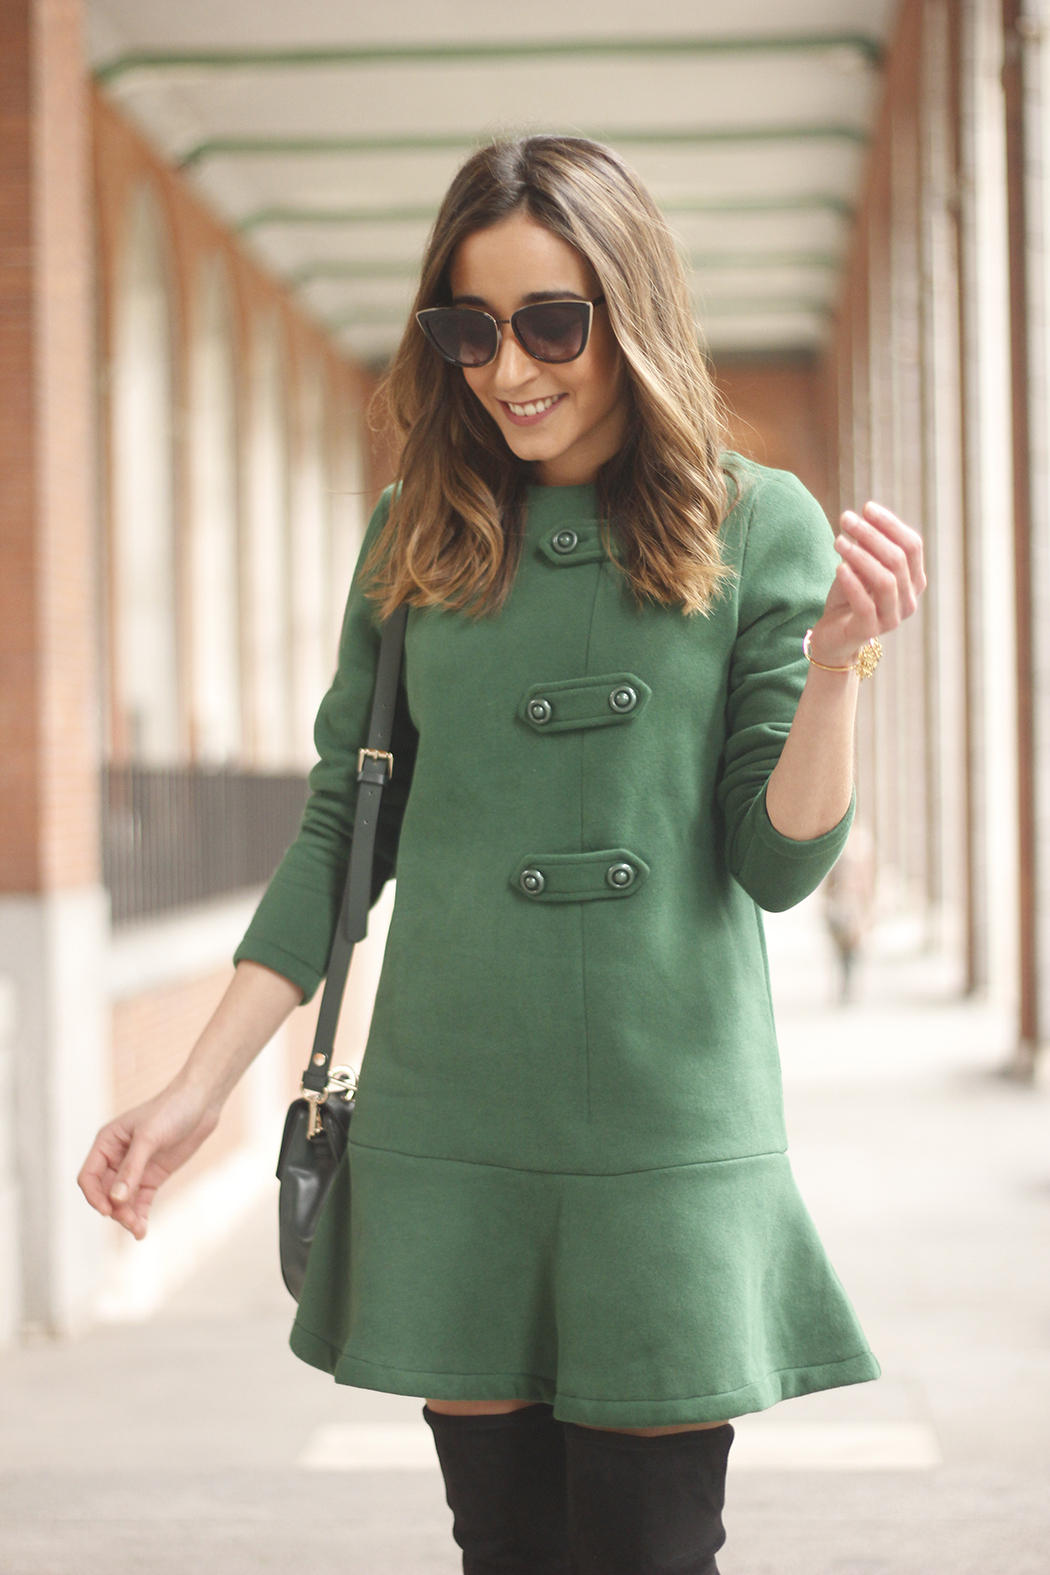 Green Dress Over the knee boots mango outfit sunnies accessories bag10